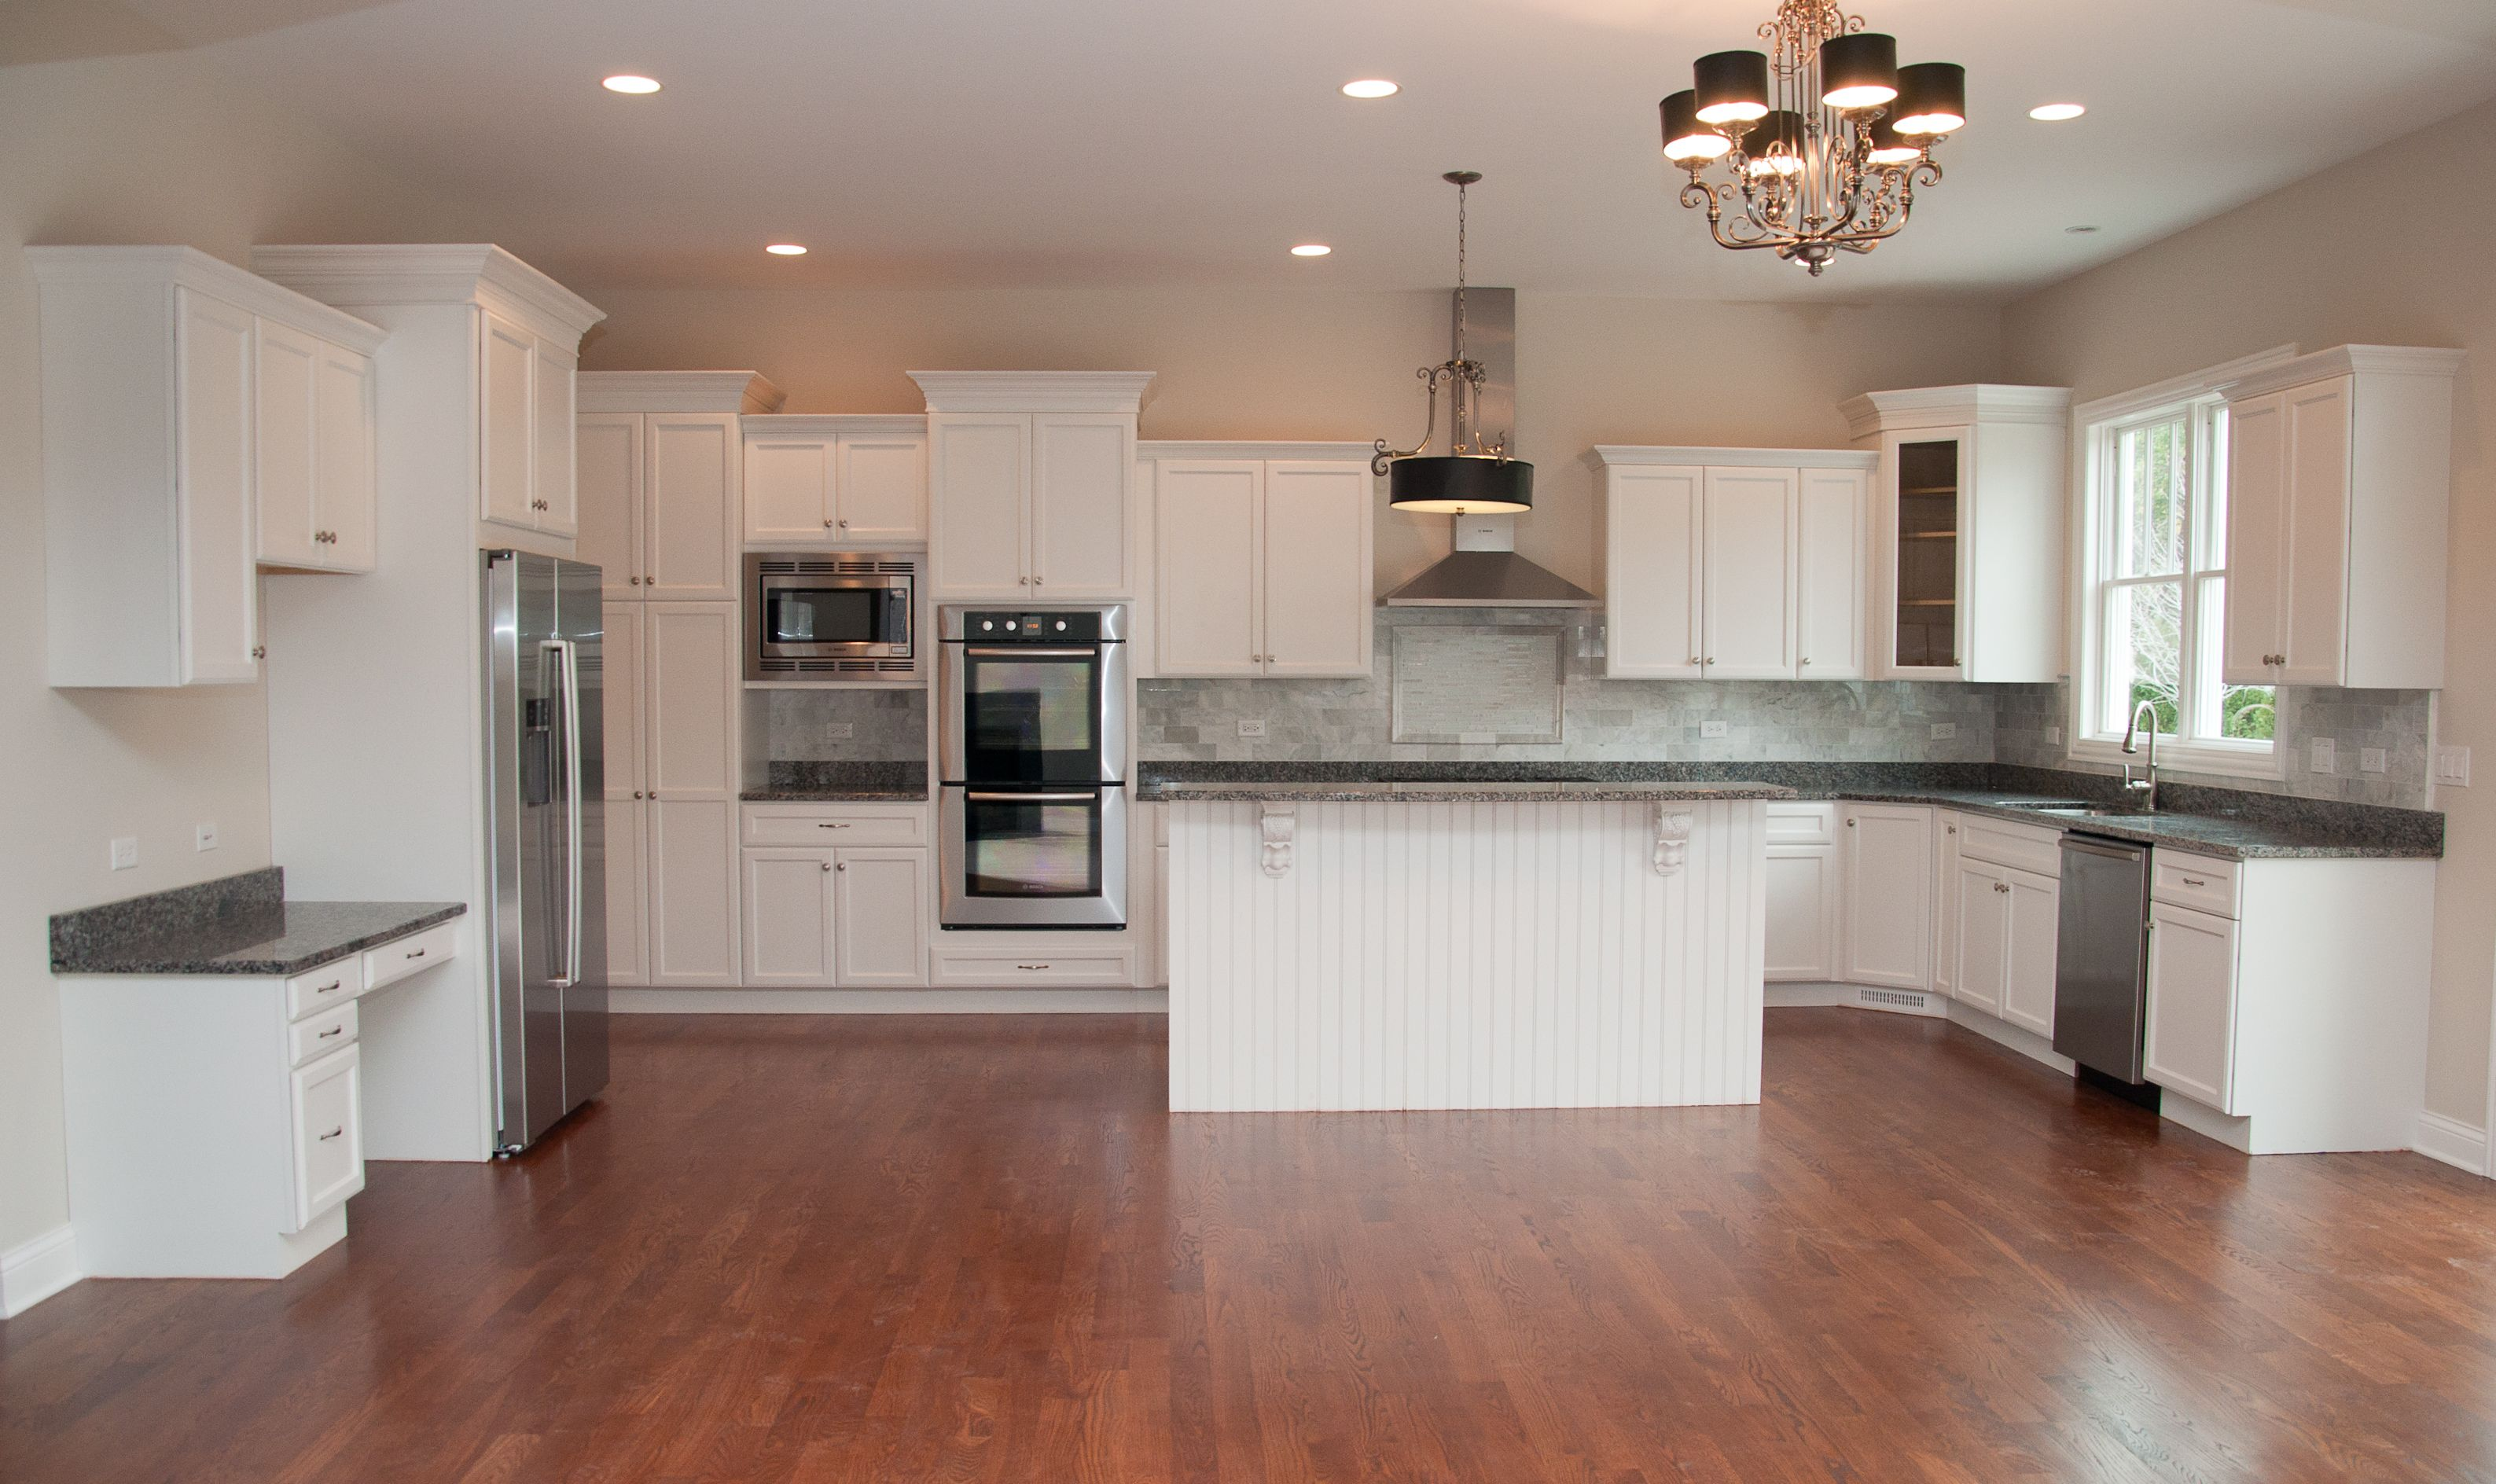 Chicago, Illinois: Light and Bright Kitchen! Painted white ...